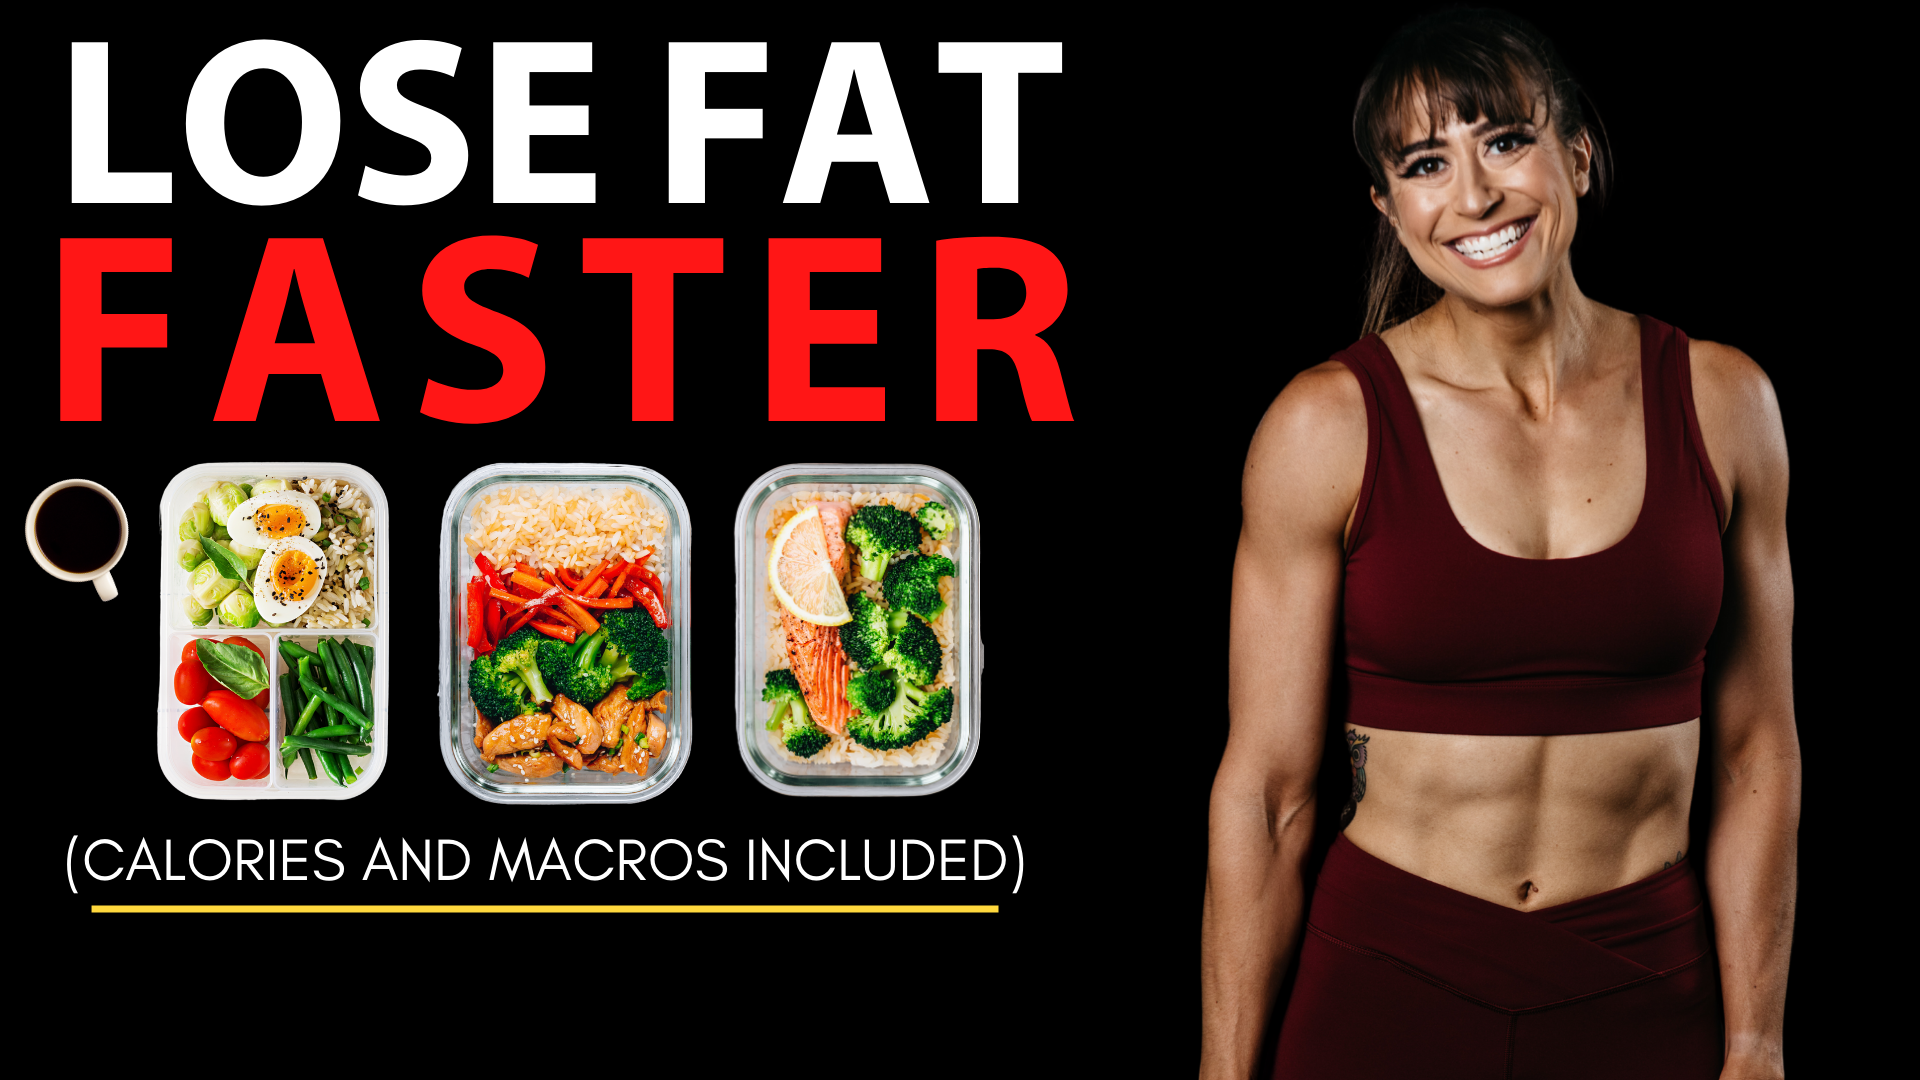 The Best Meal Plan To Lose Fat Faster (TRY THIS!)